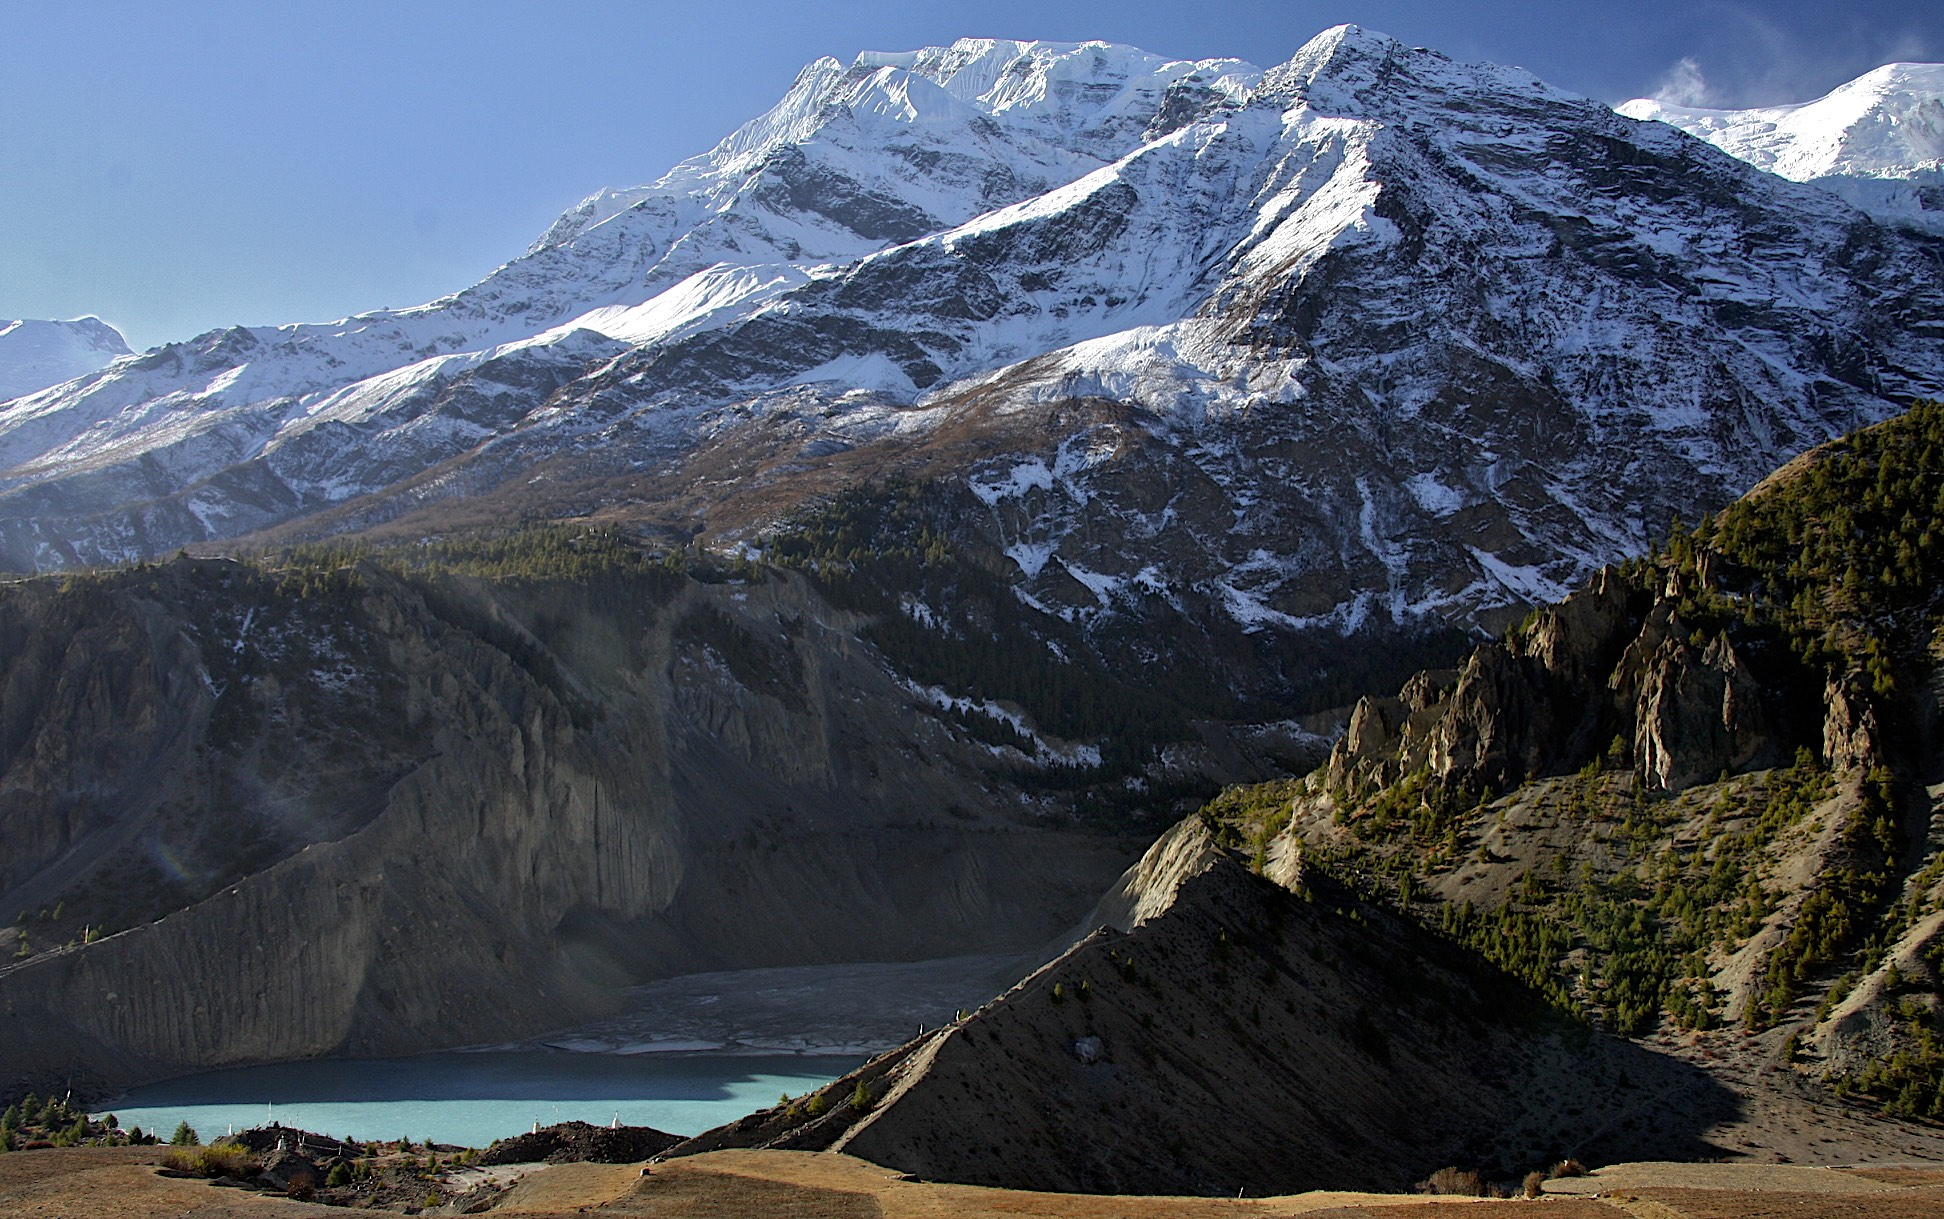 Annapurna III and Gangapurna from Manang